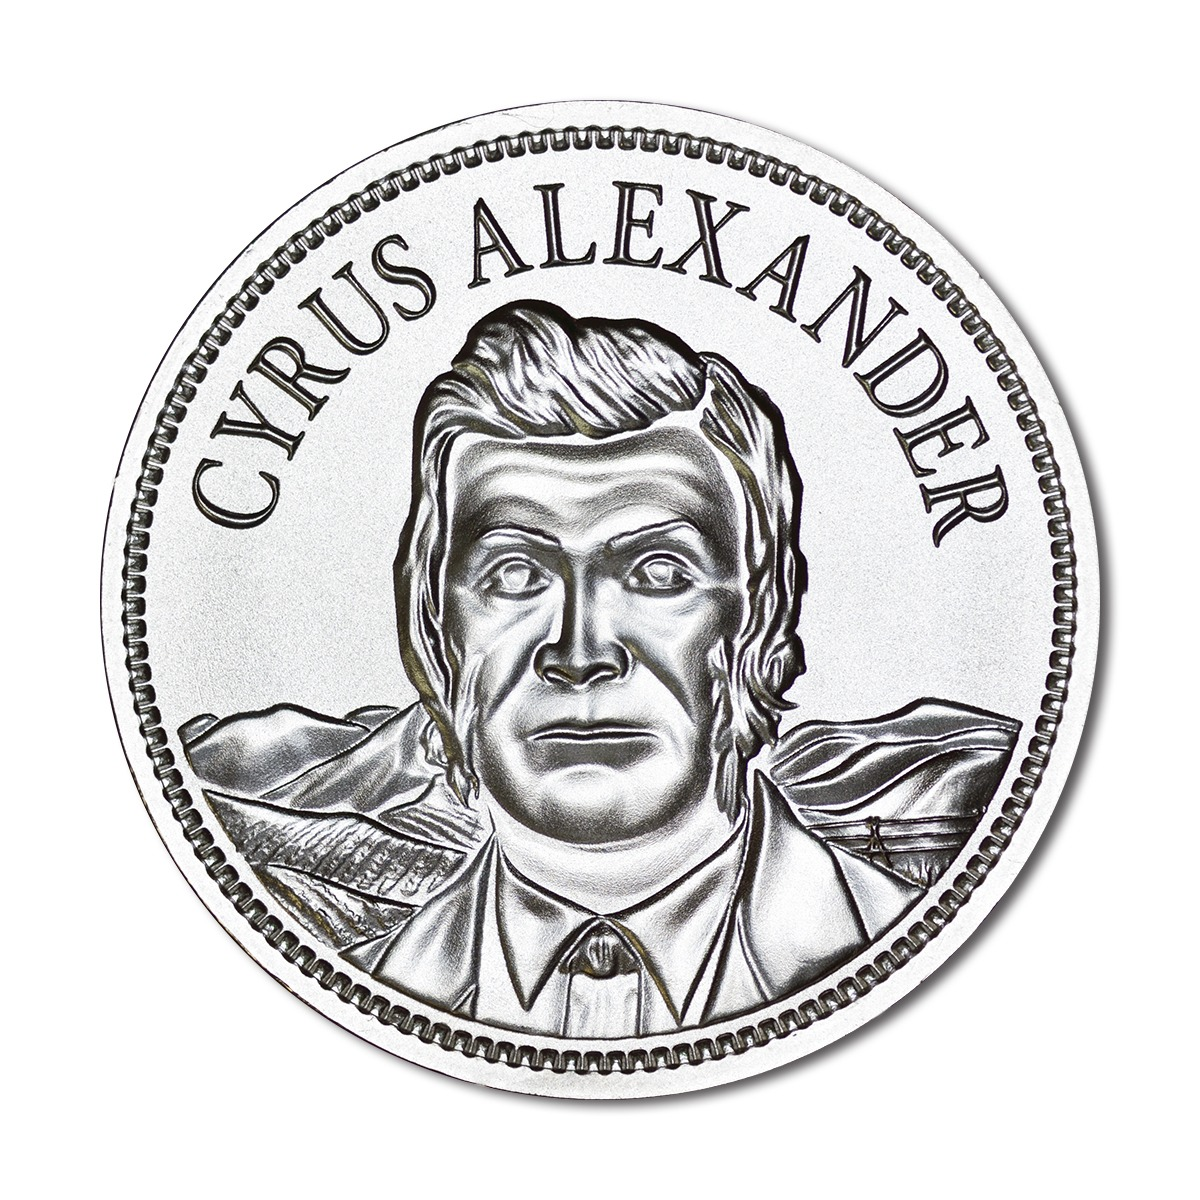 CYRUS ALEXANDER – 2 TROY OUNCE – 50MM – LIMITED MINTAGE: 5,000